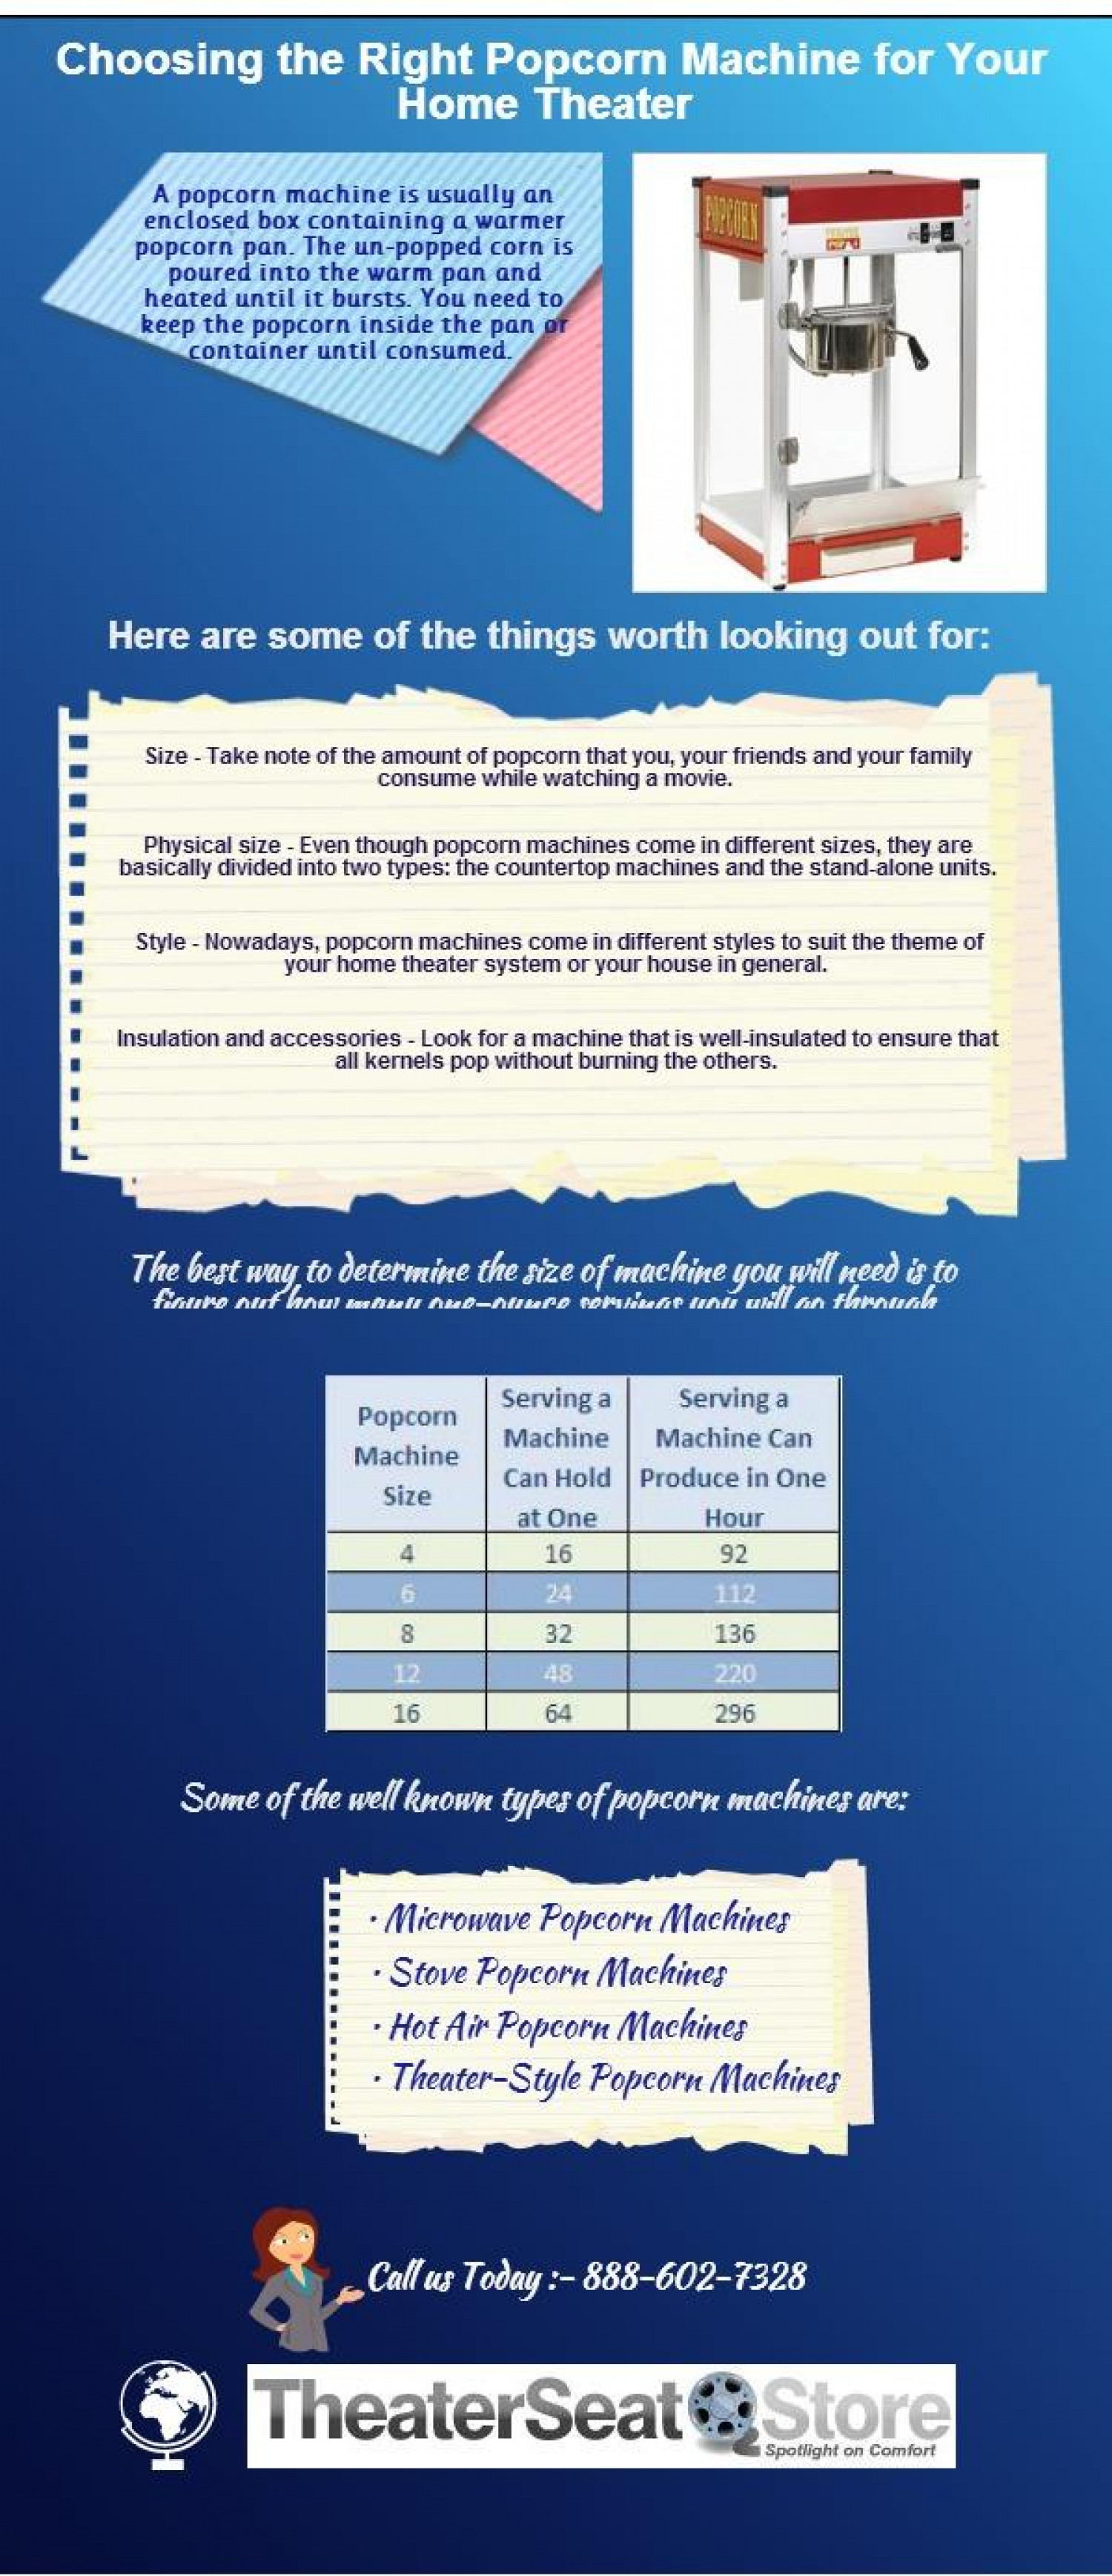 Choosing the Right Popcorn Machine for Your Home Theater [Info graphic] Infographic